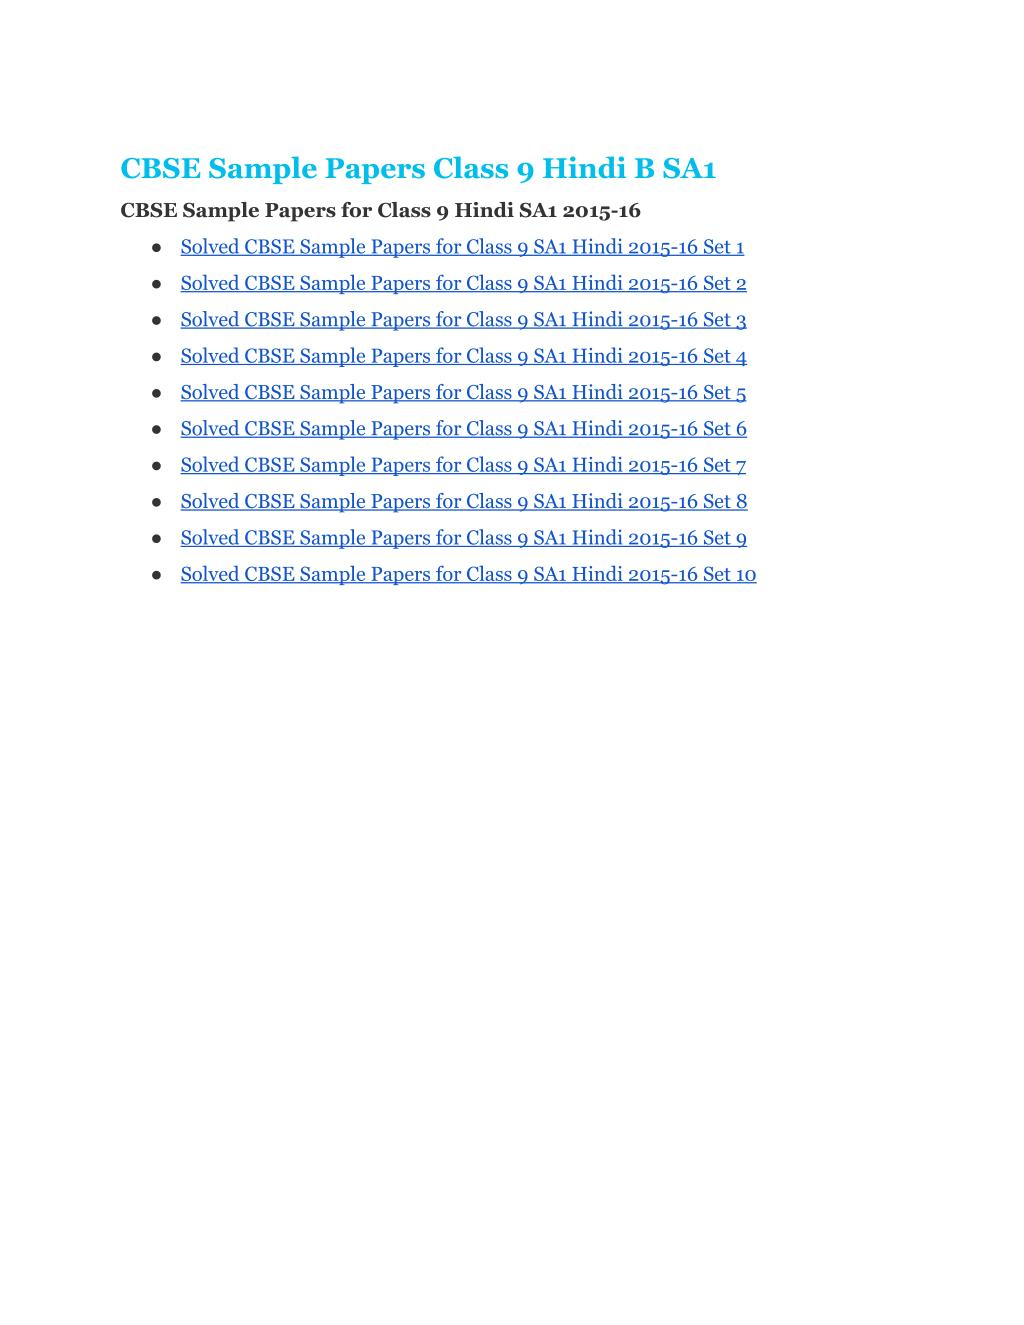 PPT - CBSE-Sample-Papers-Class9-Hindi-B PowerPoint